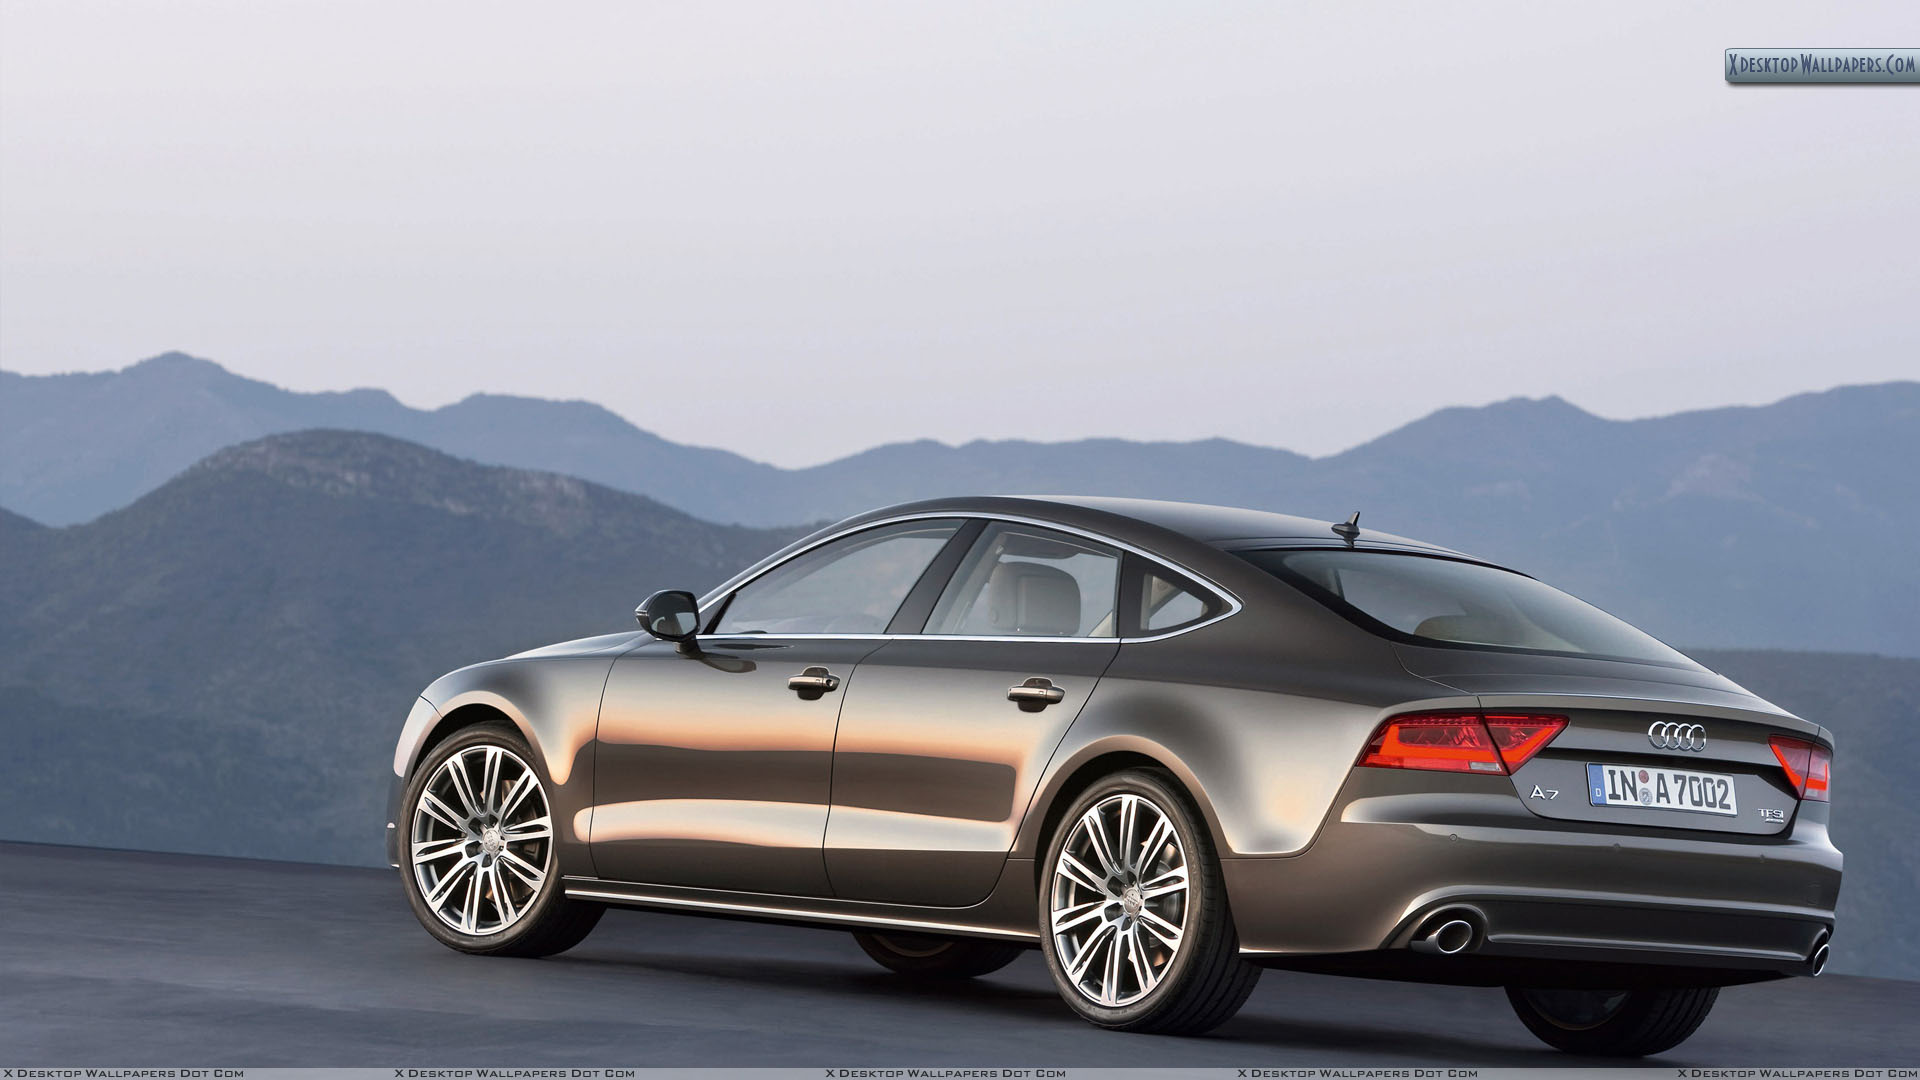 22 audi wallpapers s7 sportback forecast to wear in on every day in 2019